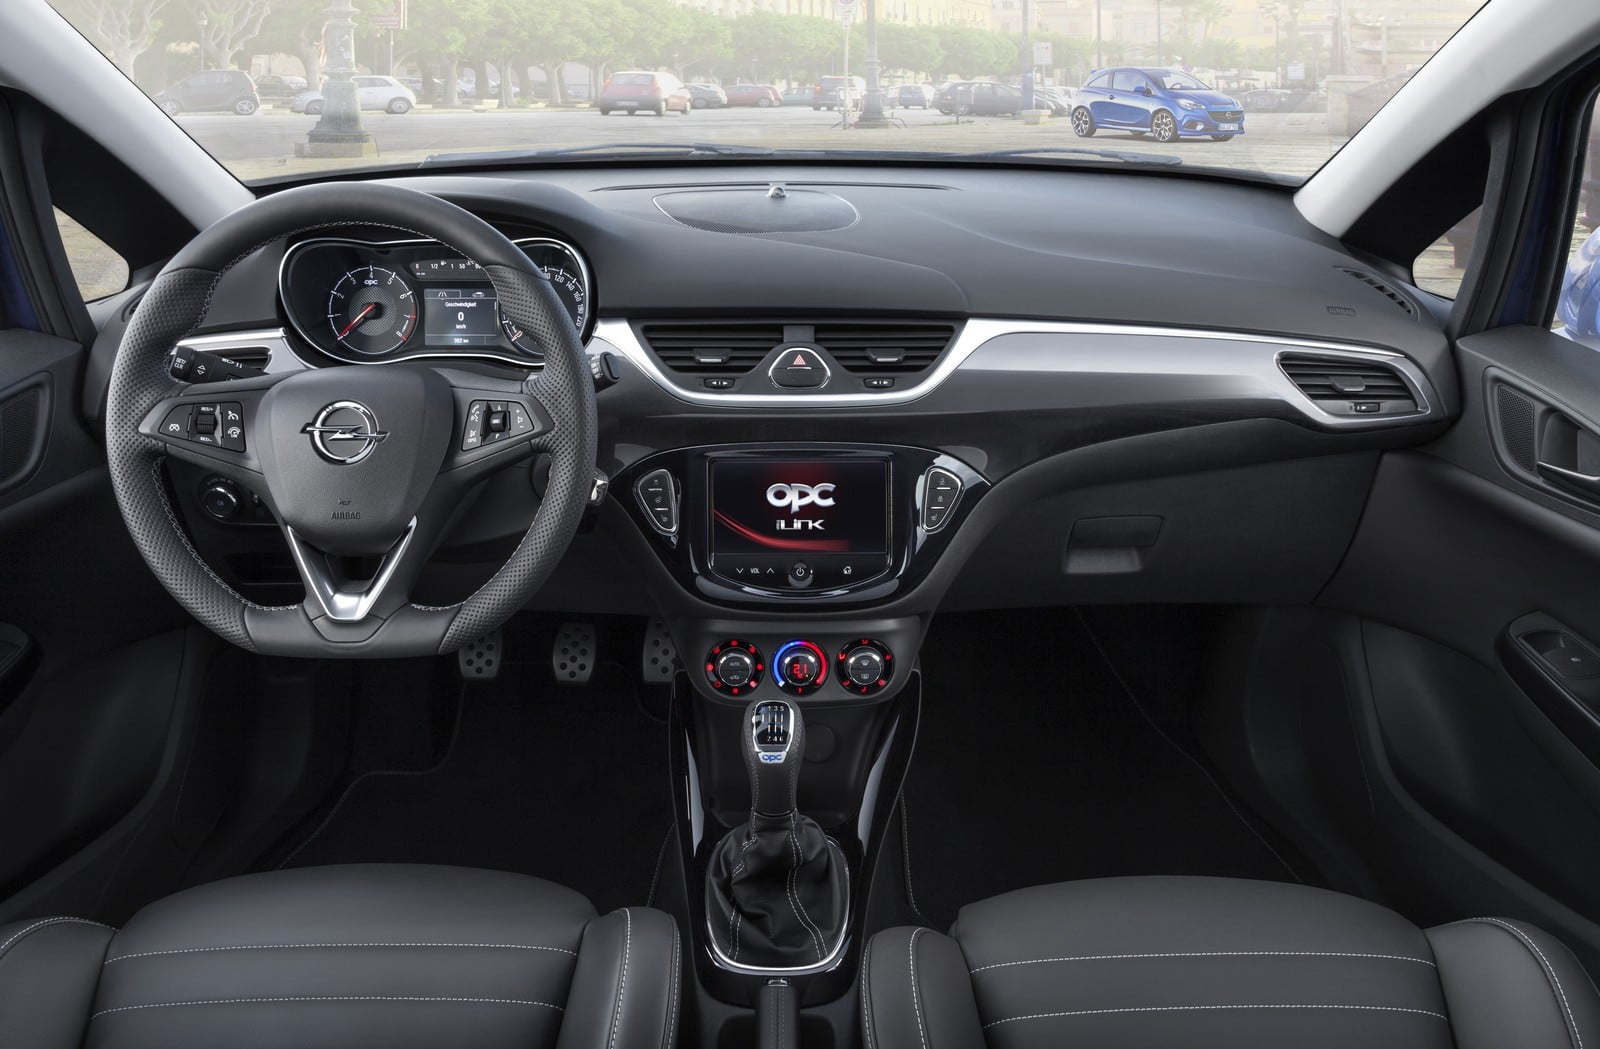 opel pr sente la corsa opc 2015 avec un pack performance. Black Bedroom Furniture Sets. Home Design Ideas